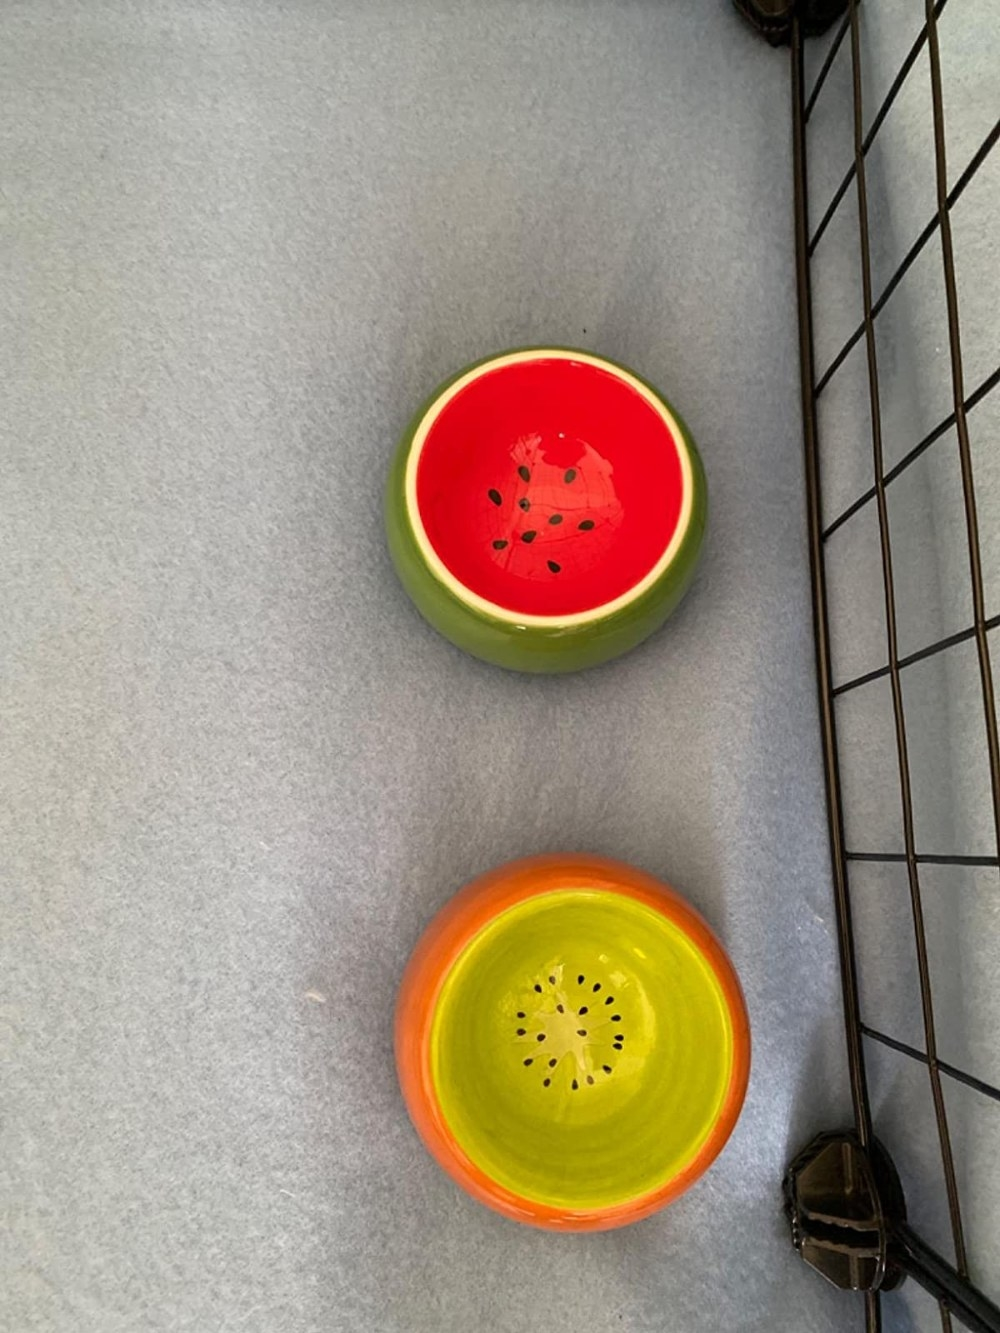 Review photo of the two-piece set of food dishes